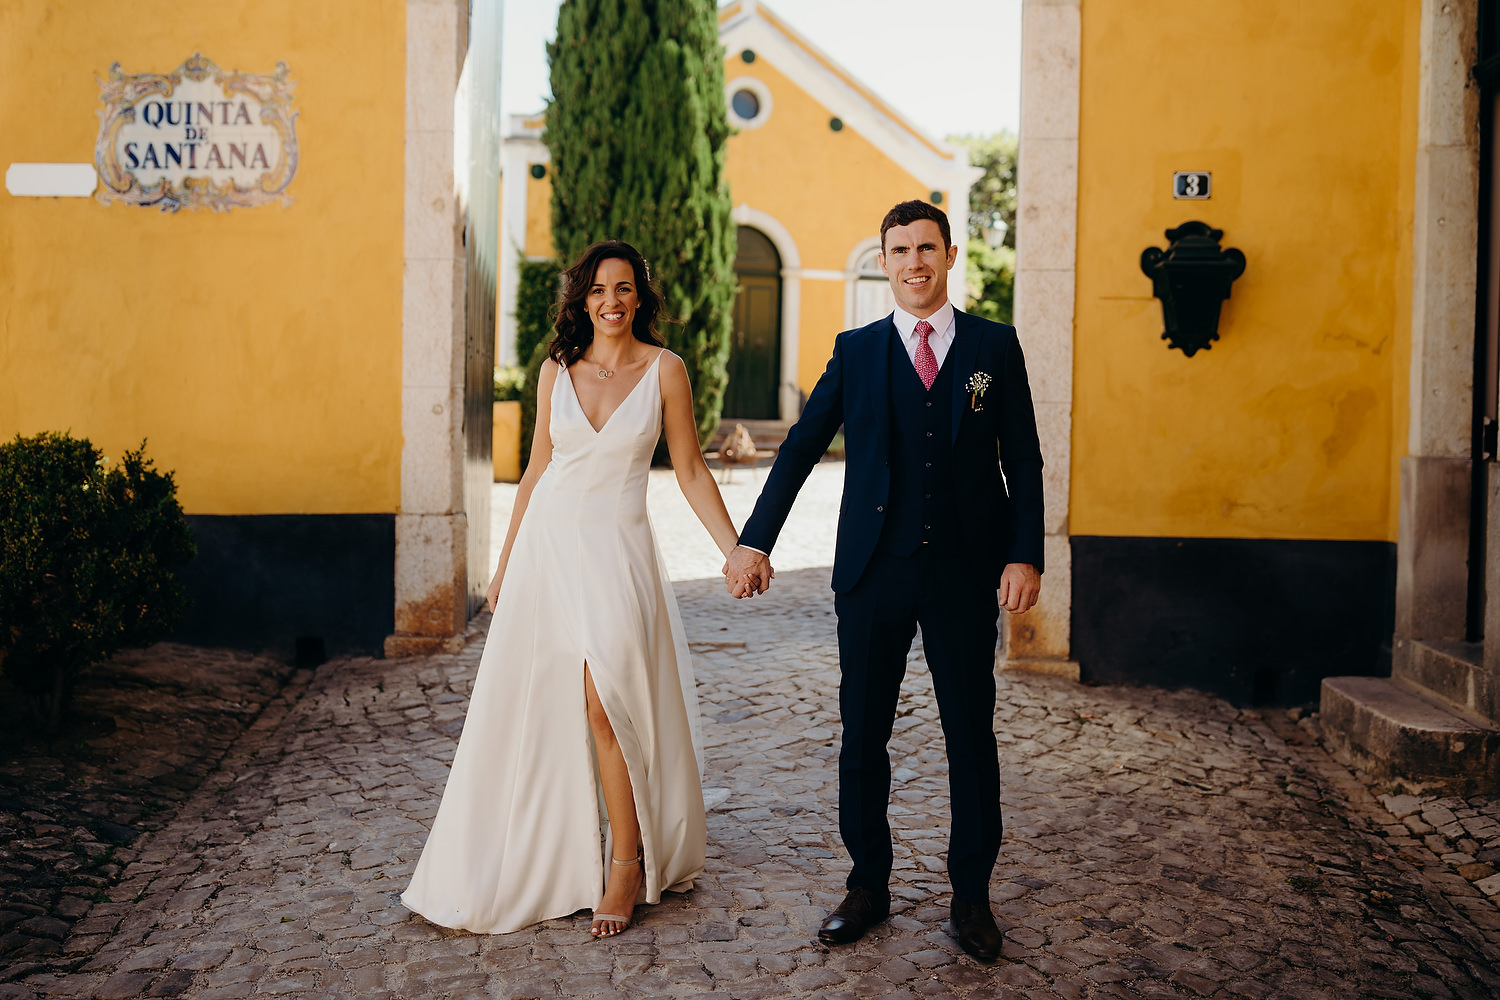 Quinta de Sant'Ana wedding